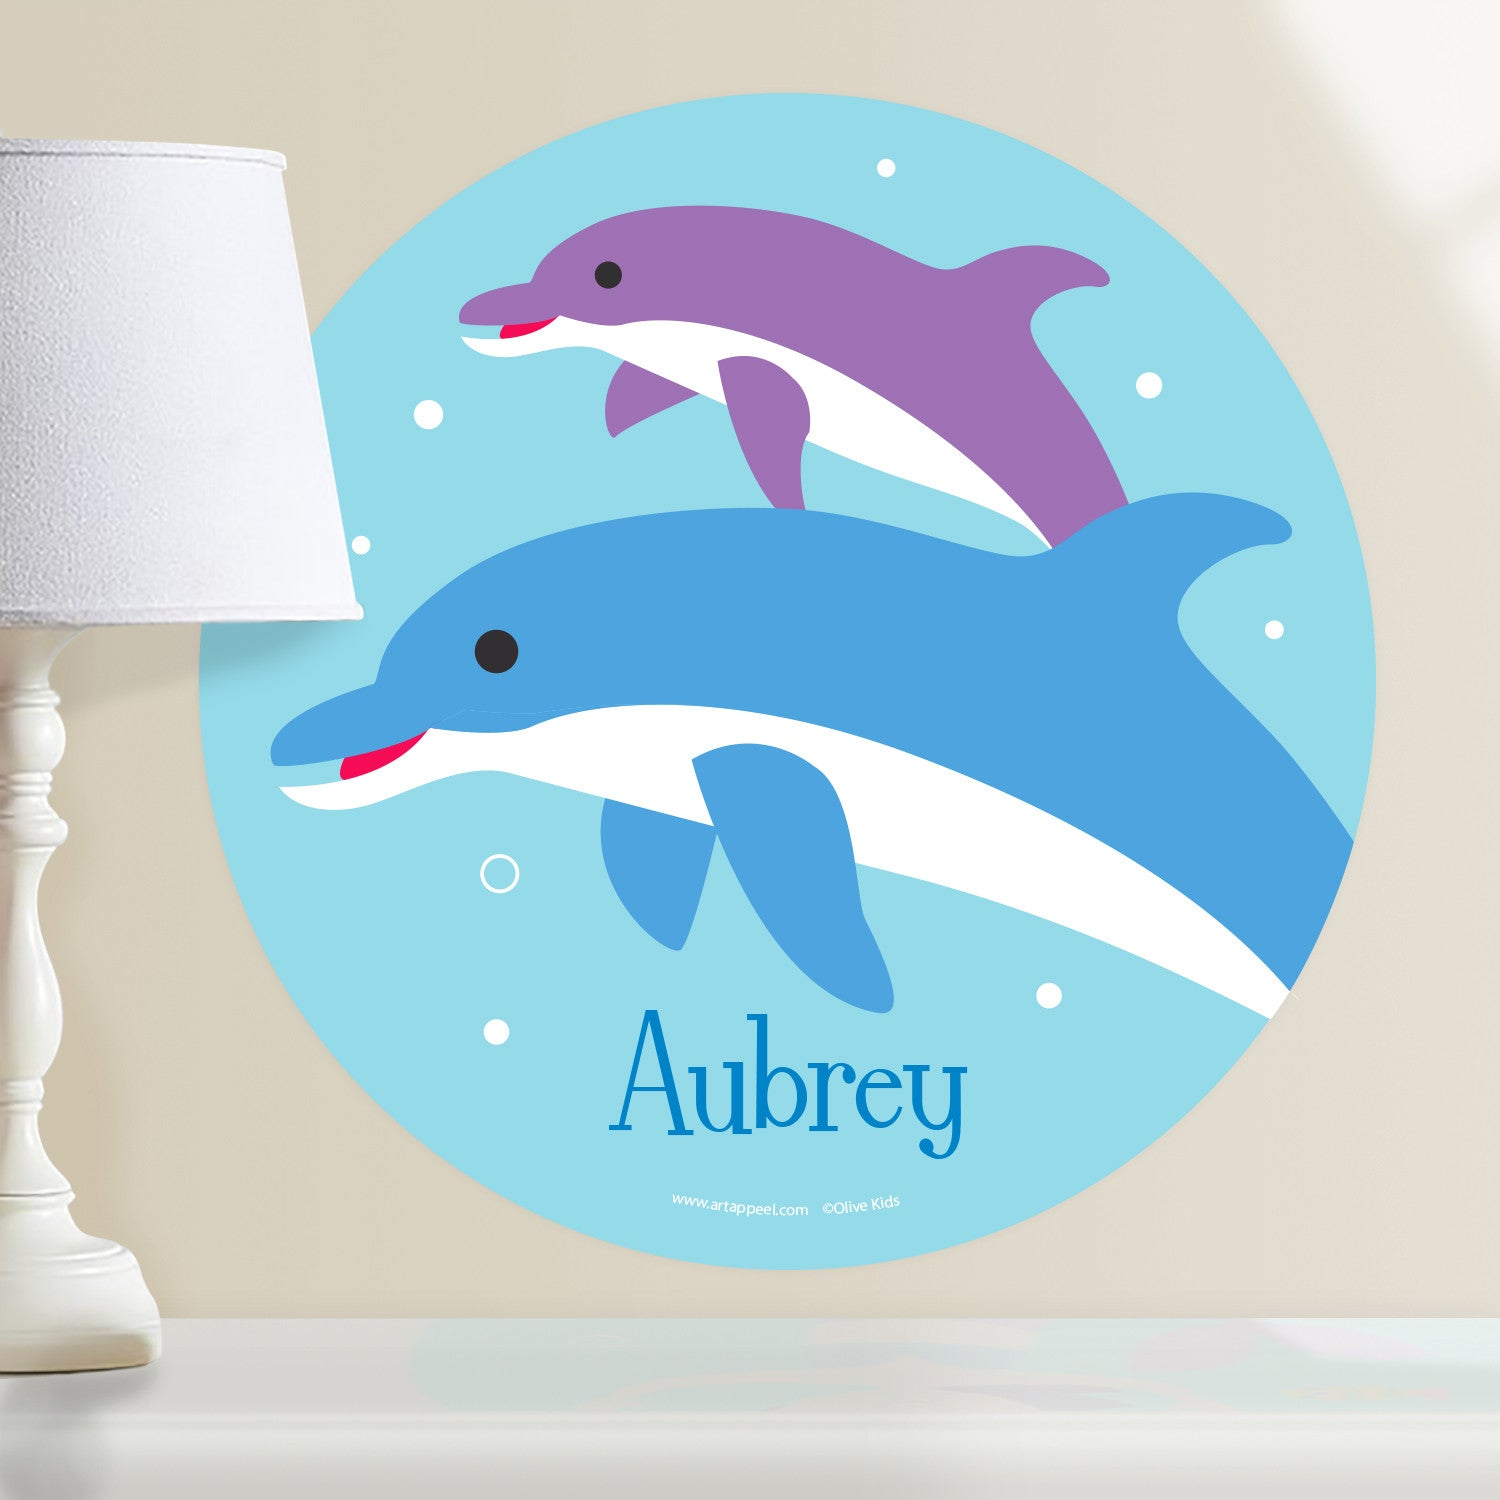 Dolphins personalized kids wall dotz decal art appeel dolphin personalized kids wall decal features one blue dolphin and one purple dolphin on an ocean amipublicfo Image collections